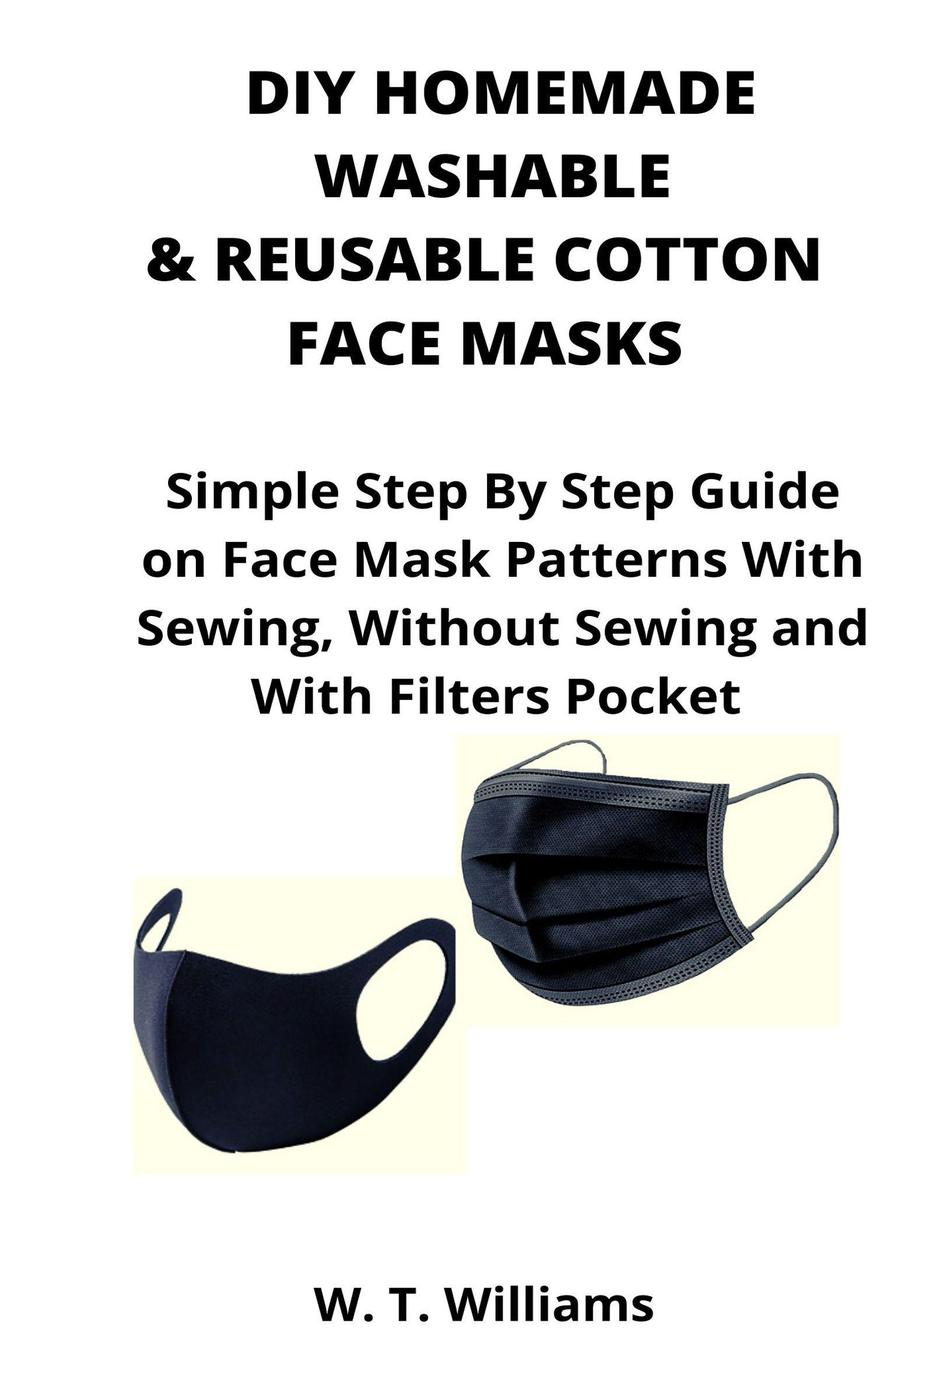 DIY Homemade Washable & Reusable Cotton Face Masks: Simple Step By Step Guide on Face Mask Patterns With Sewing, Without Sewing and With Filters Pocket